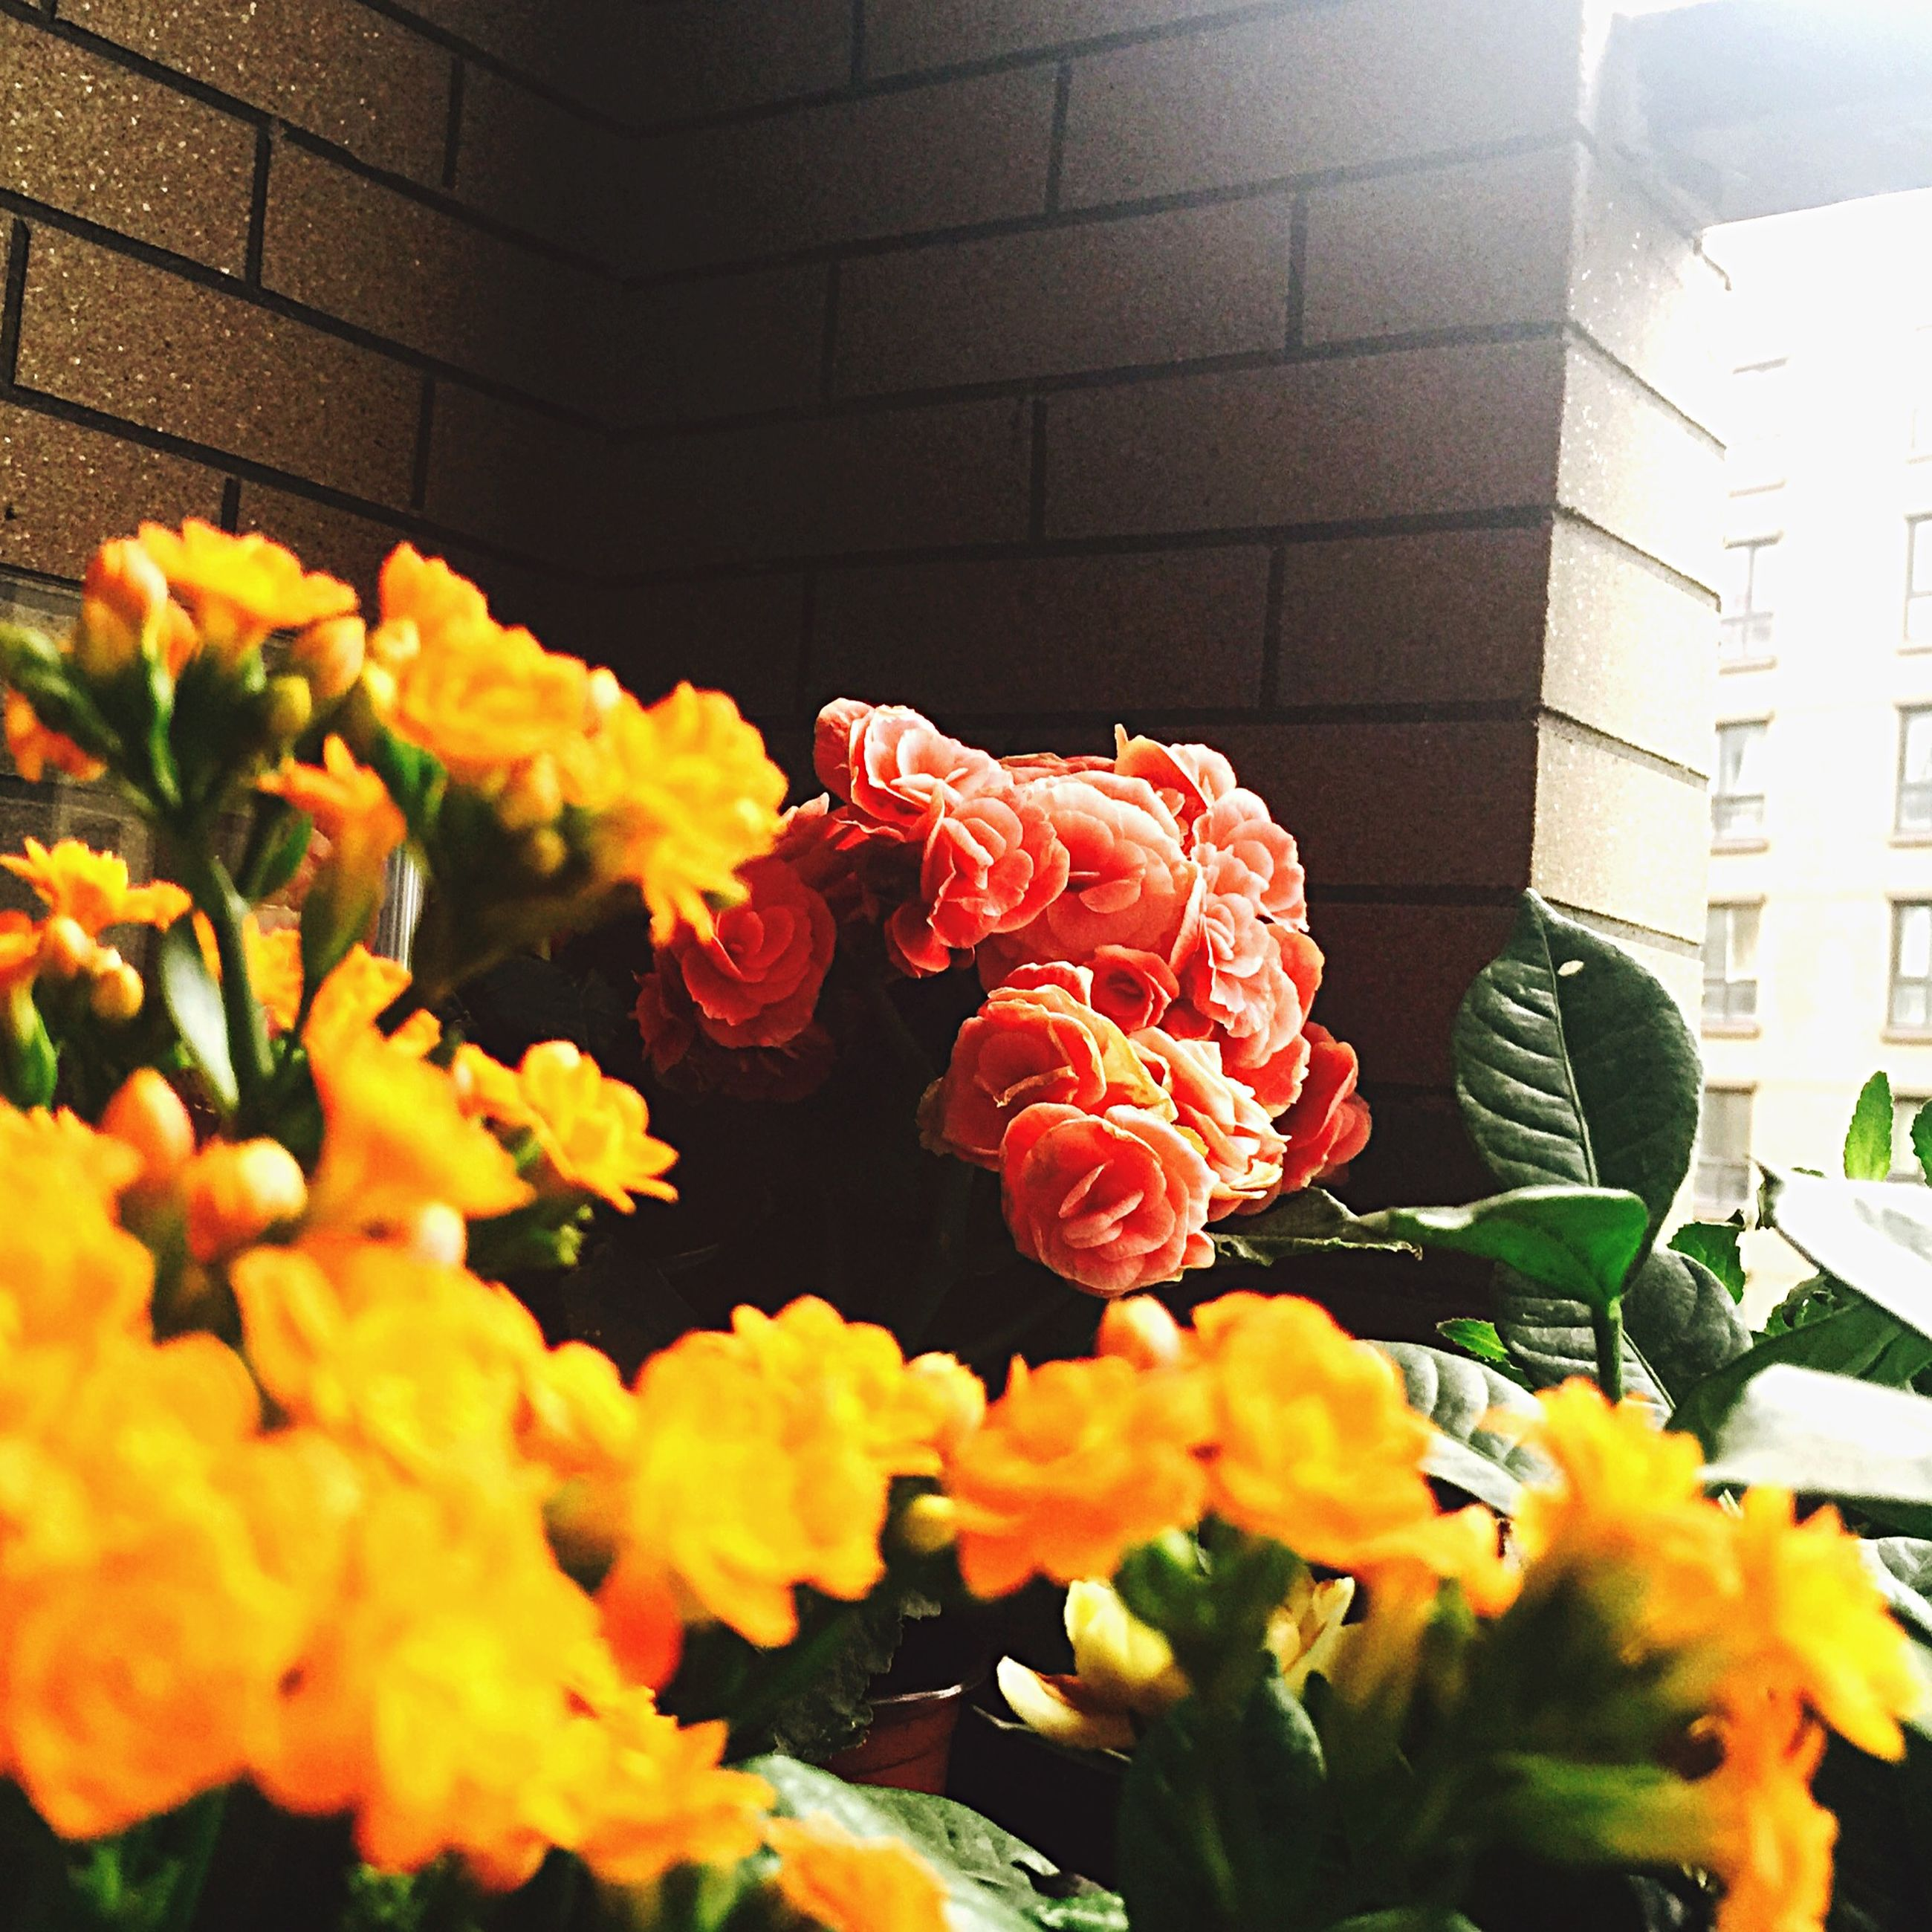 flower, yellow, petal, fragility, plant, freshness, leaf, built structure, growth, architecture, flower head, sunlight, blooming, nature, building exterior, close-up, beauty in nature, wall - building feature, rose - flower, no people